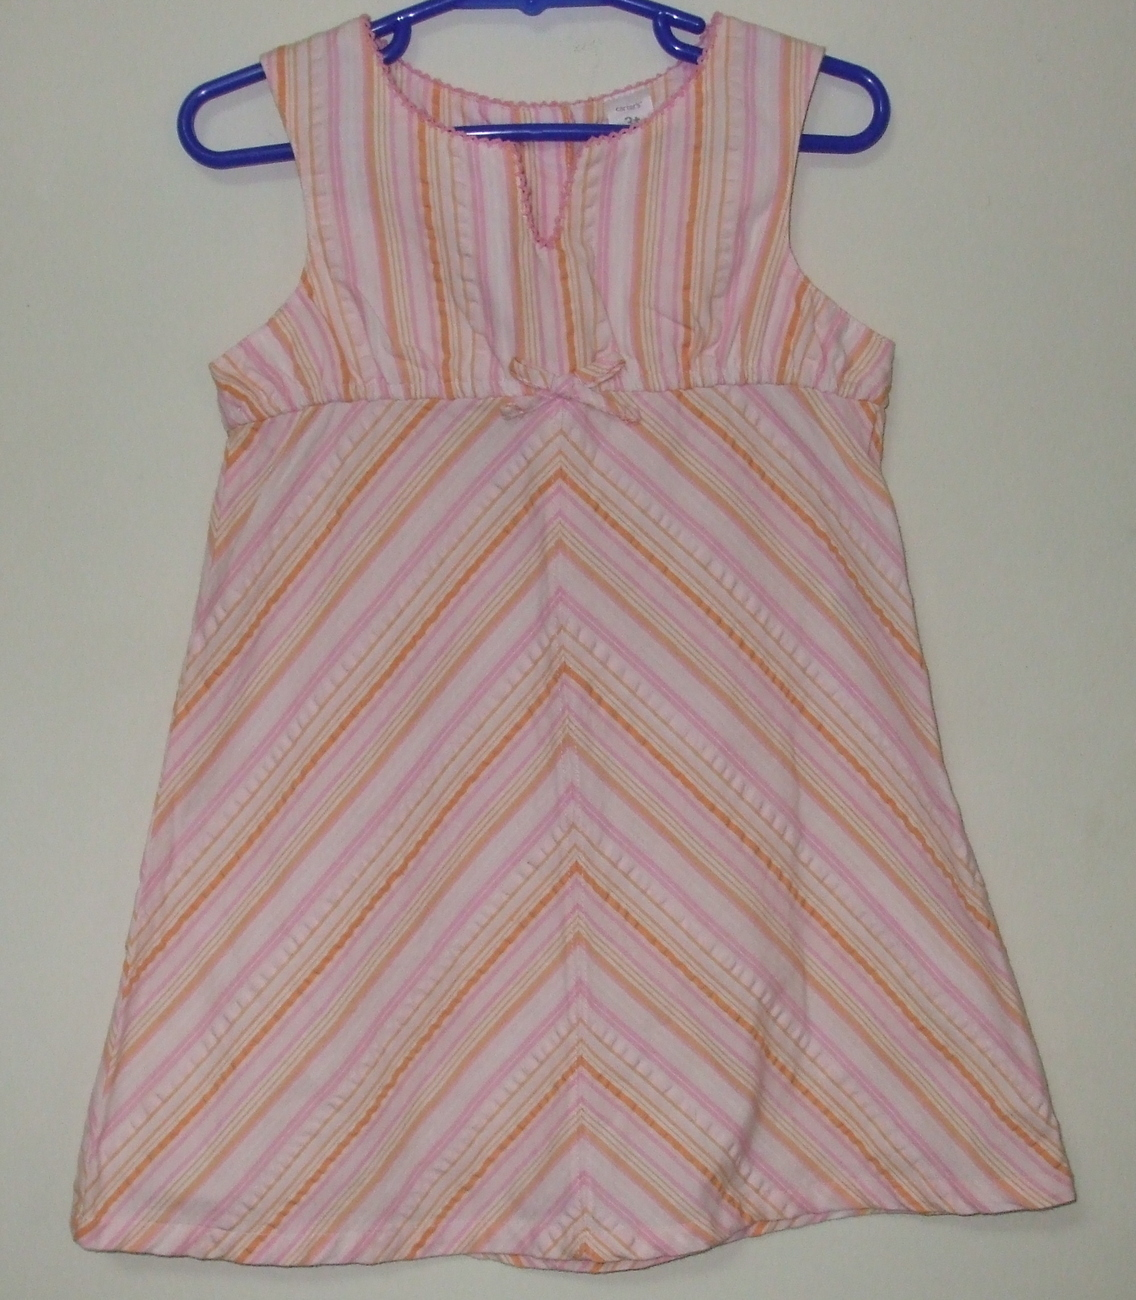 Girls Carters Sleeveless Multi Color Dress Size 3T